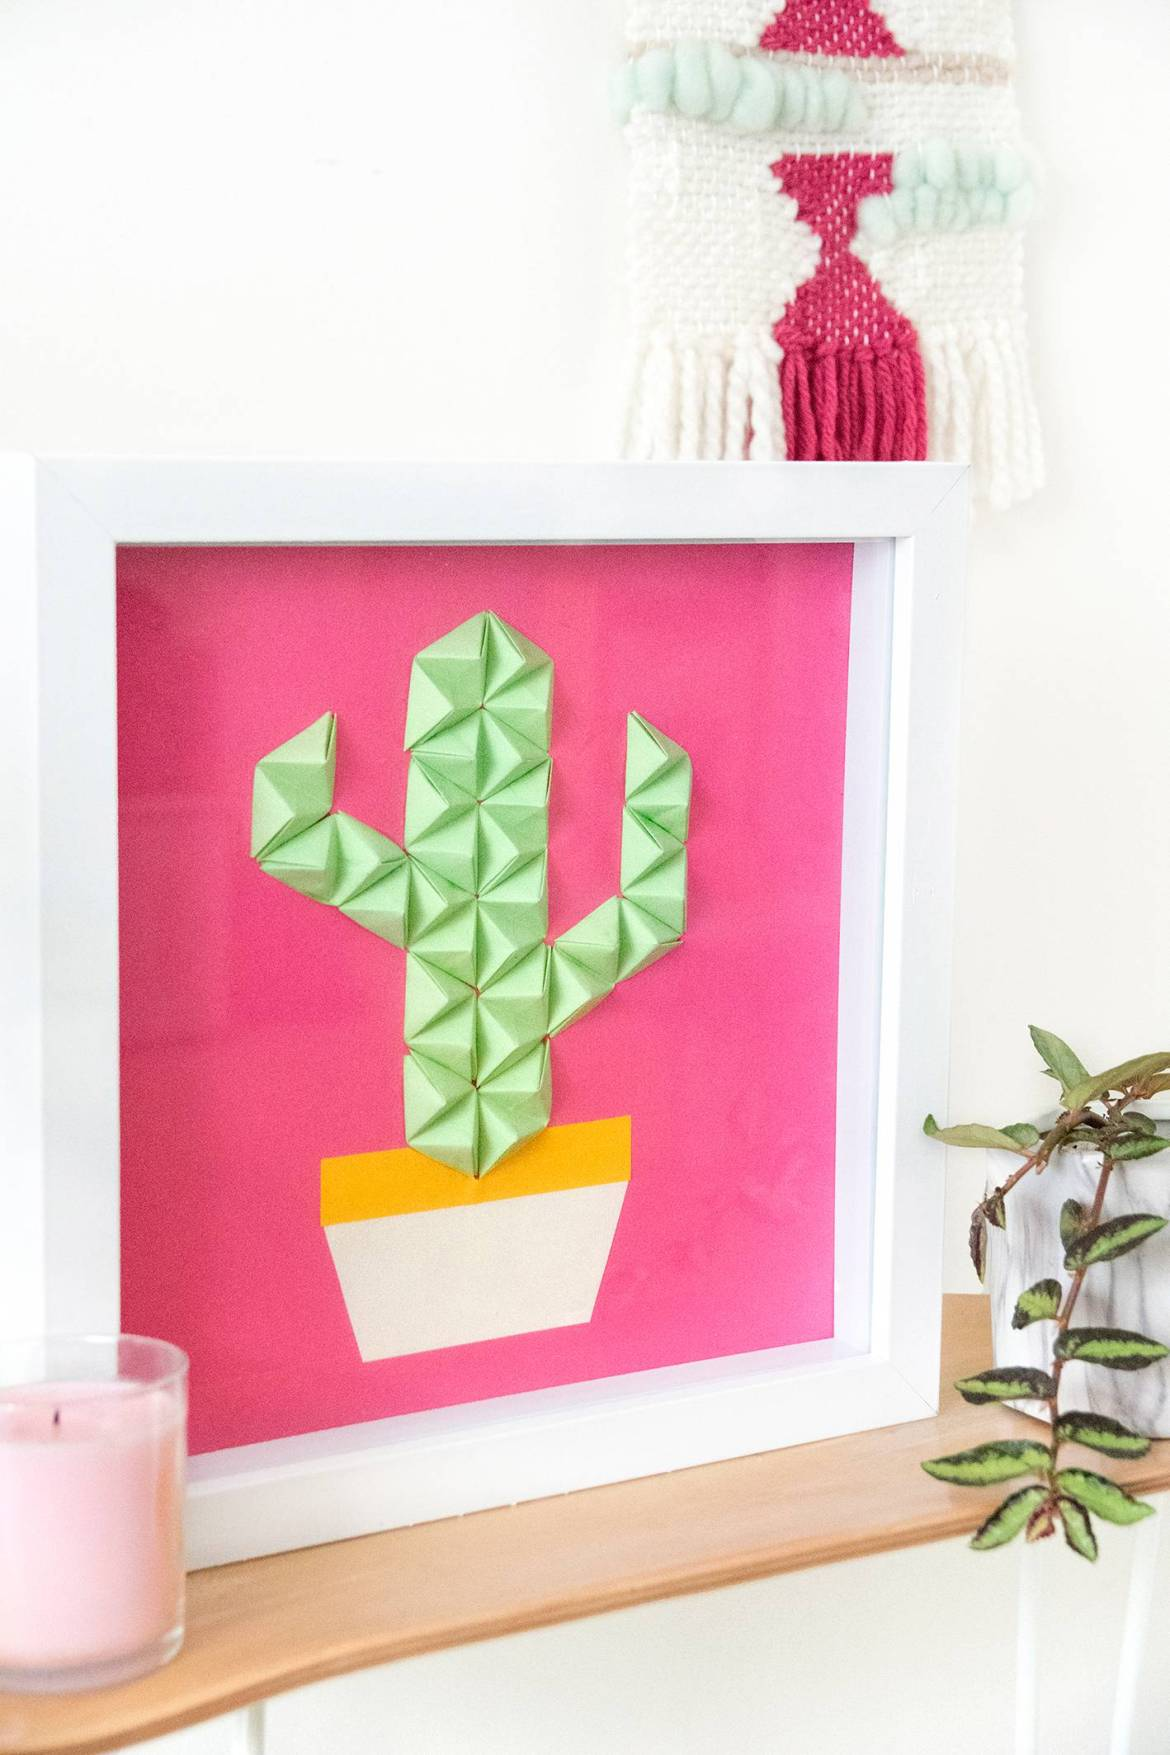 Make this - Easy DIY origami wall art in under half an hour!